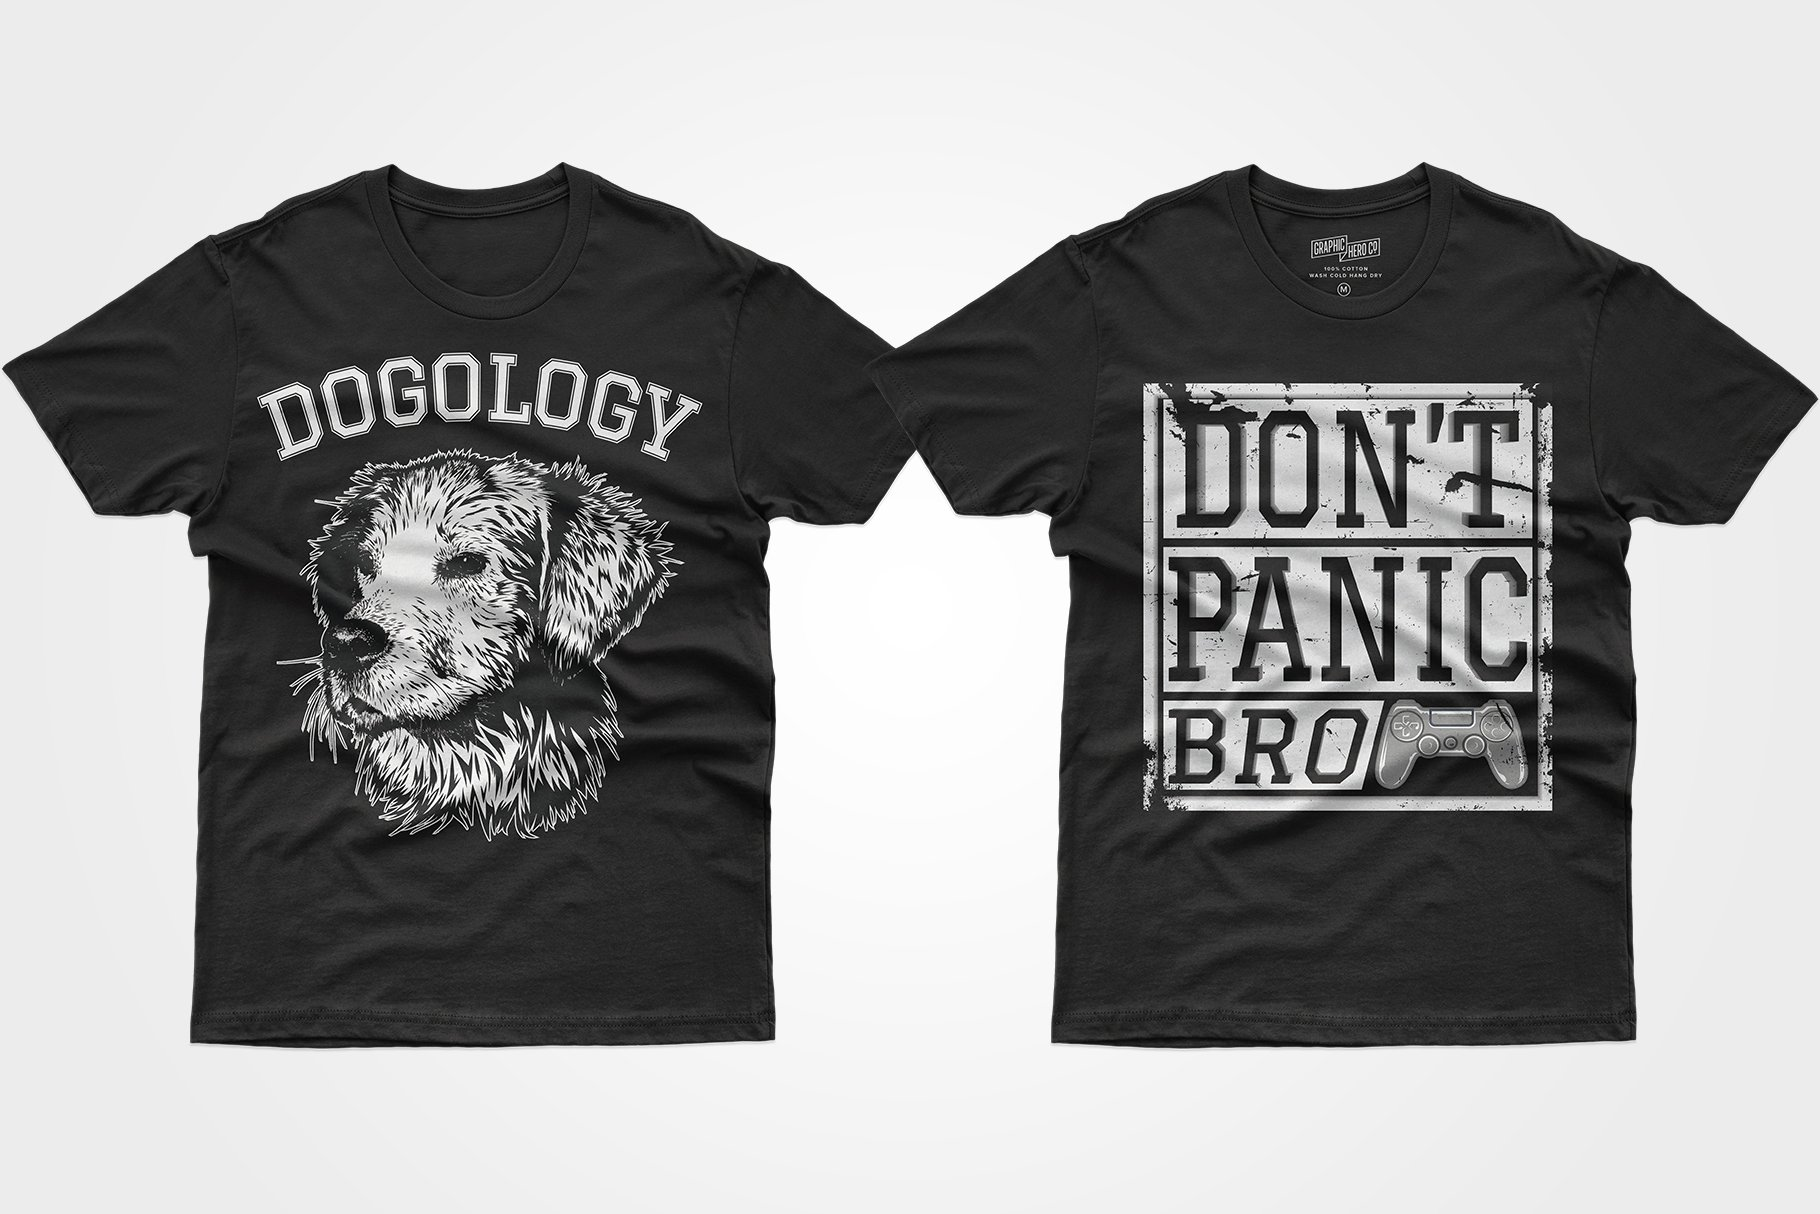 Two black T-shirts - one with a dog, the other with a prefix and a phrase.